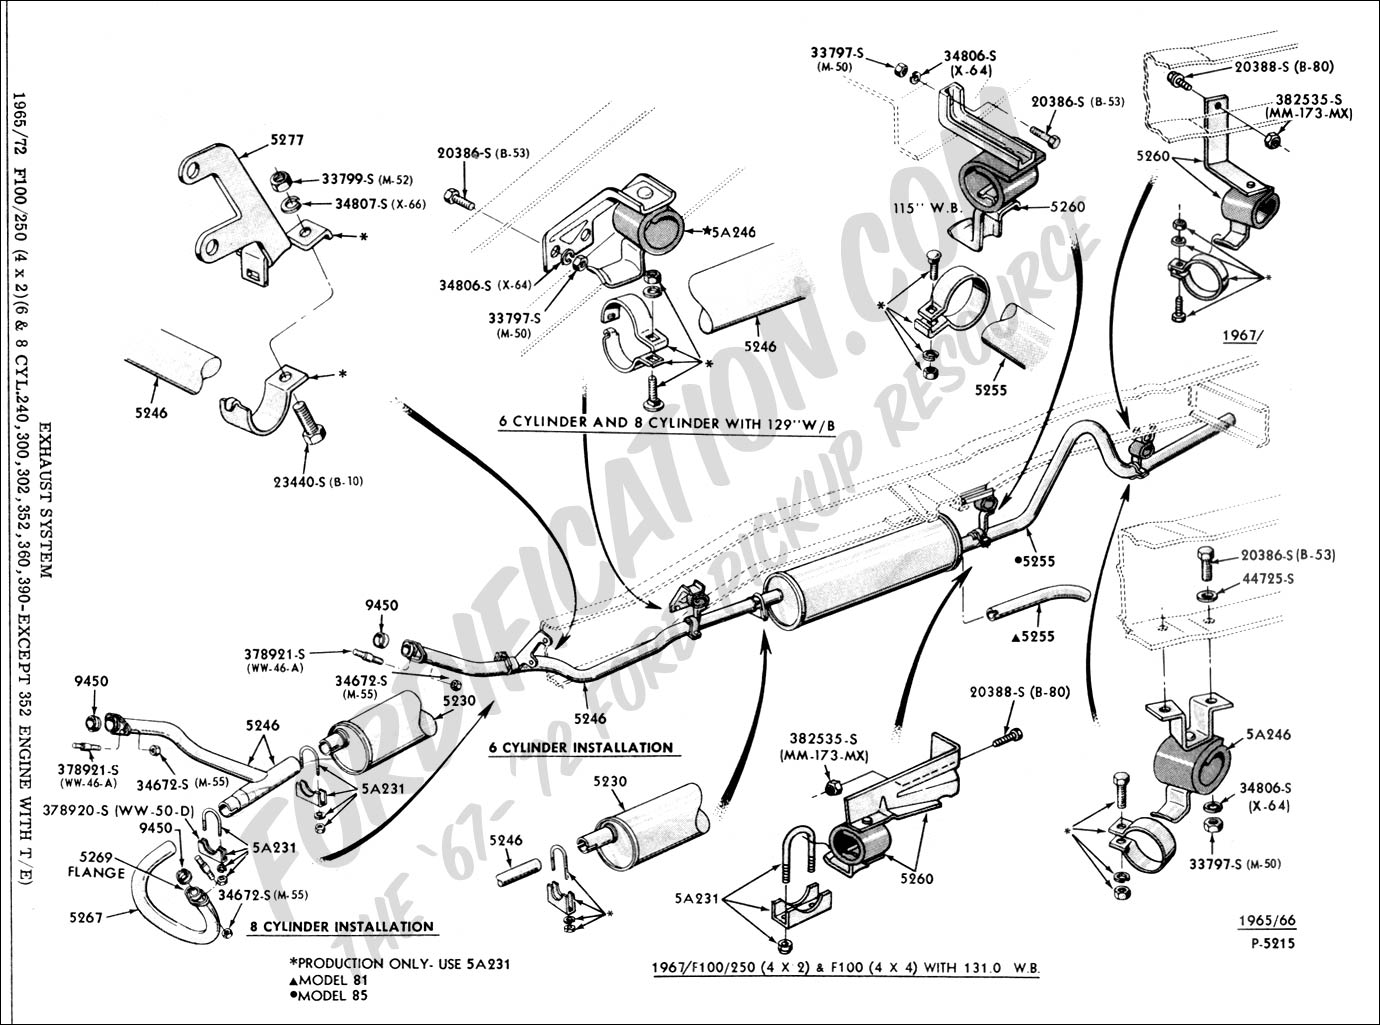 22017 Wiring Frustrations besides 5wsms Ford F100 When Try Start 67 Ford Pickup No Action additionally 857866 Ford 360 Vacuum Diagram besides Index php in addition P 0900c15280087a8a. on 1978 ford bronco wiring diagram